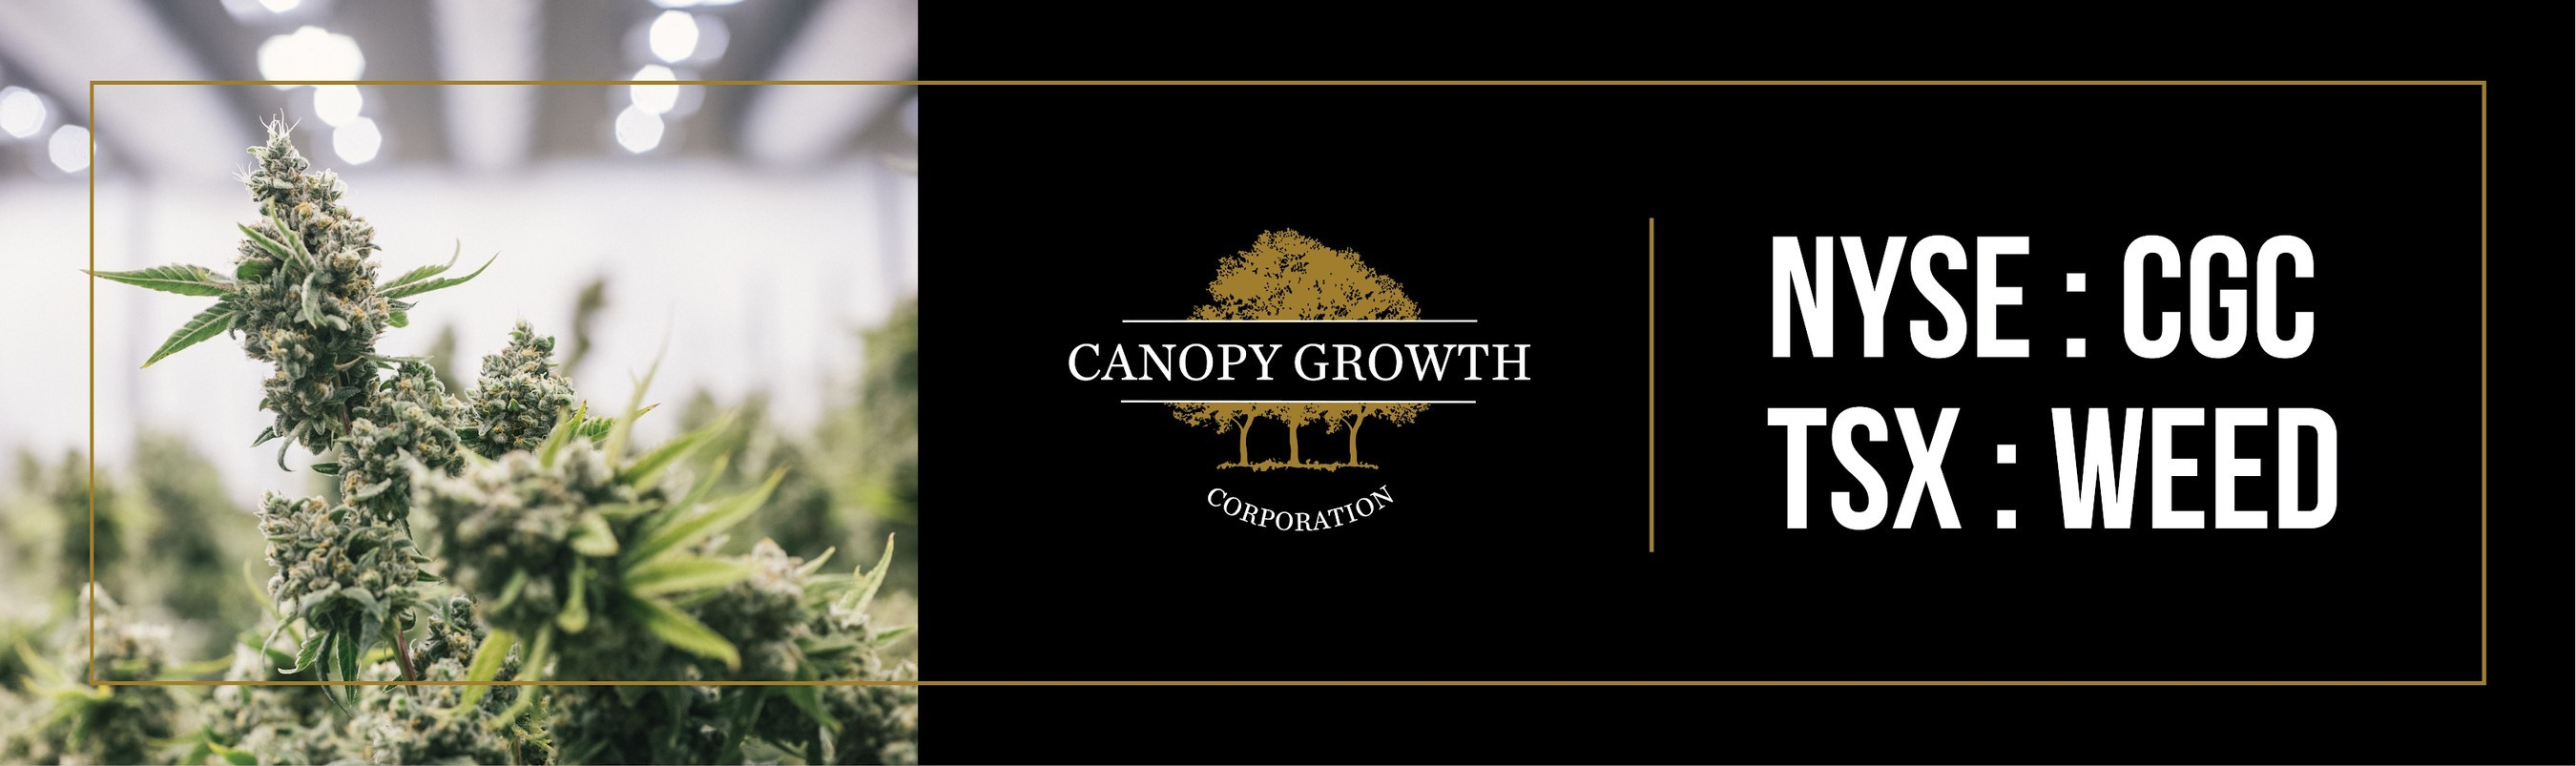 Canopy Growth Comments on The Farm Bill (CNW Group/Canopy Growth Corporation)